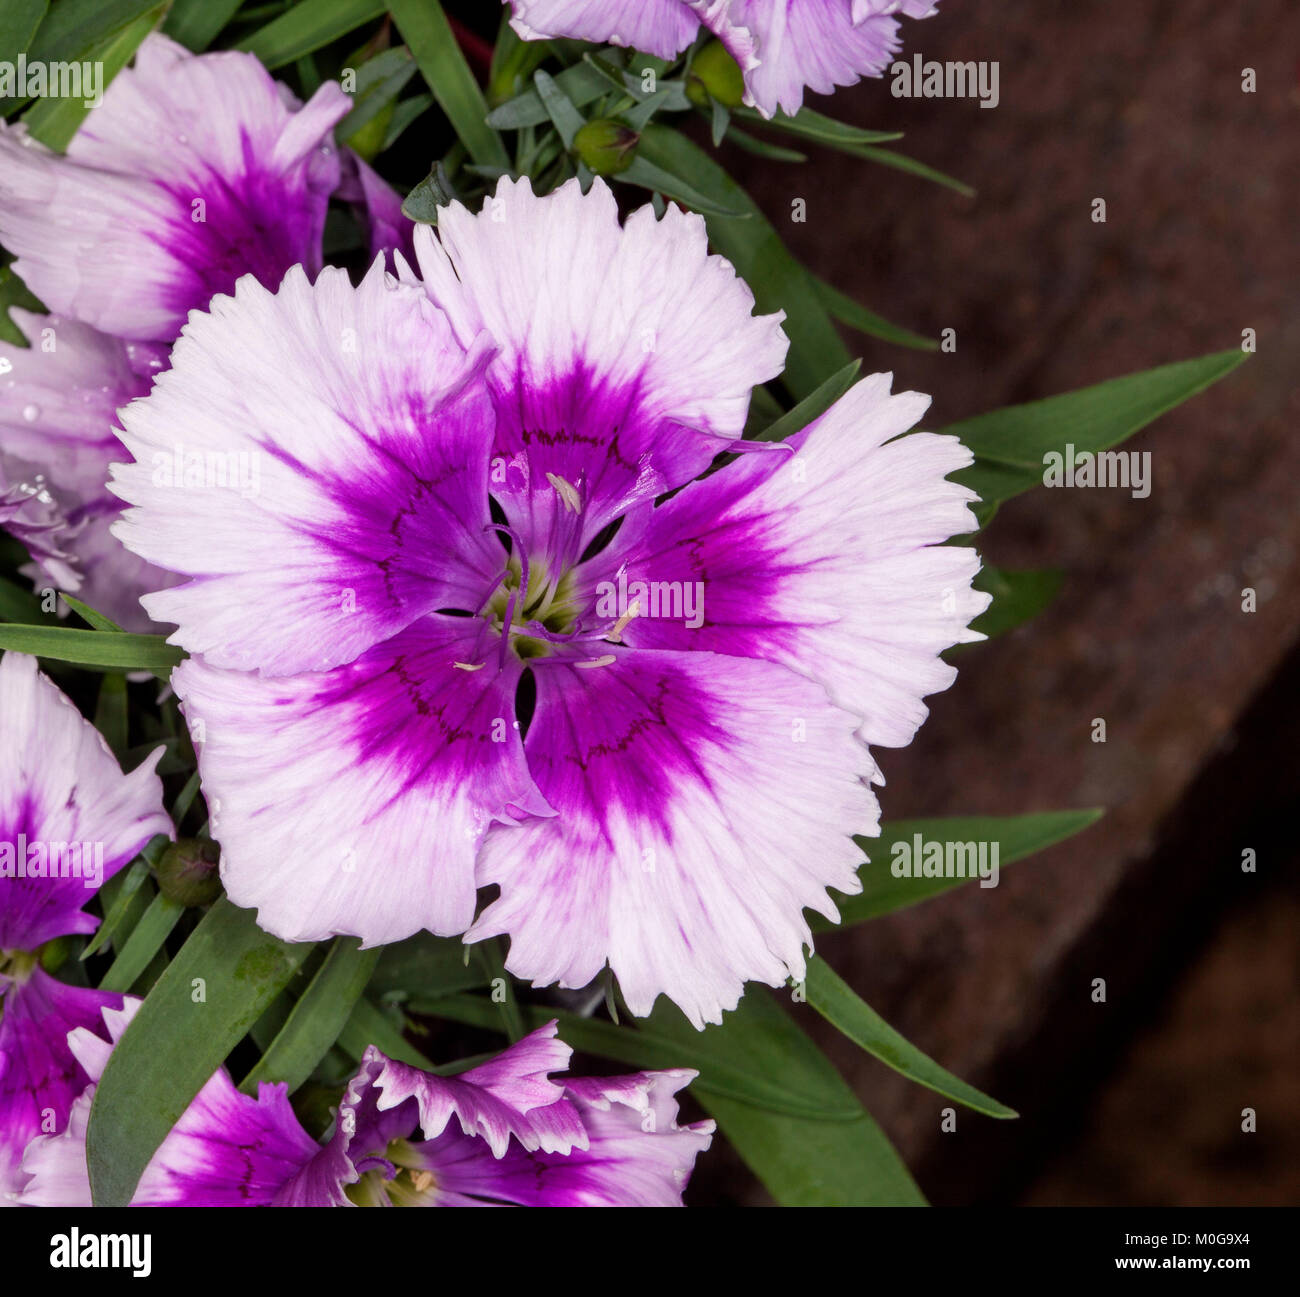 Unusual mauve and white flower and green leaves of  annual plant Dianthus barbatus, Sweet William, - Stock Image